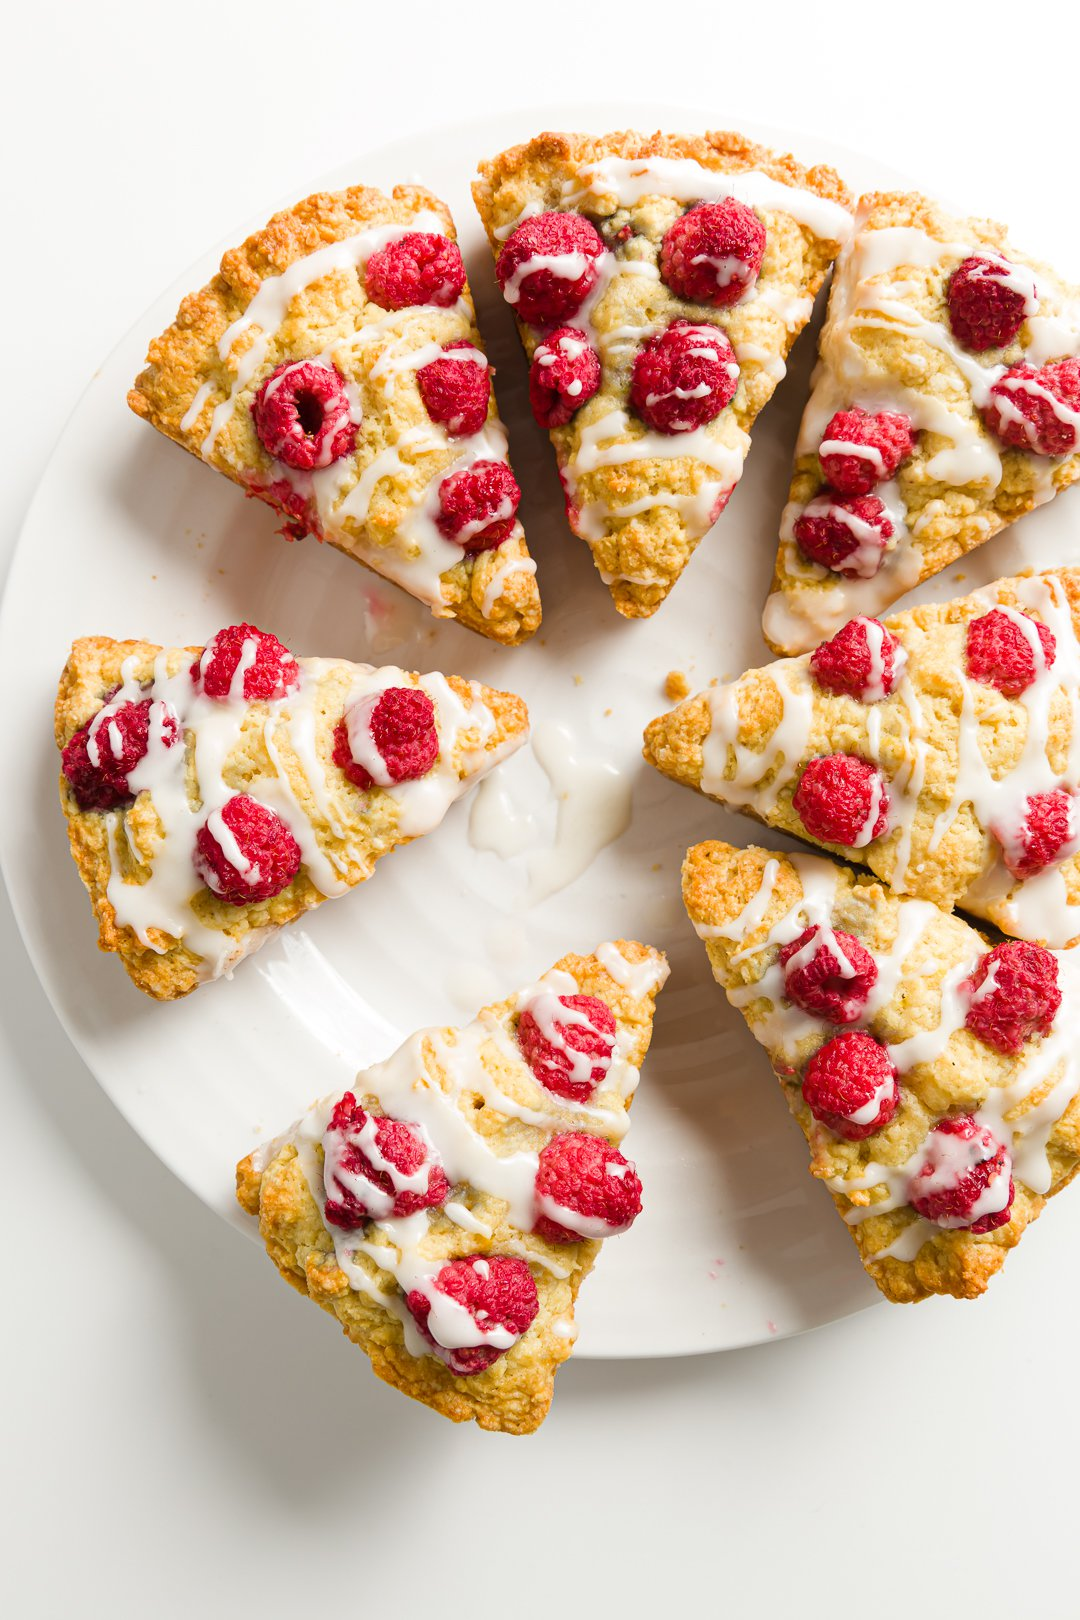 A plate filled with raspberry scones